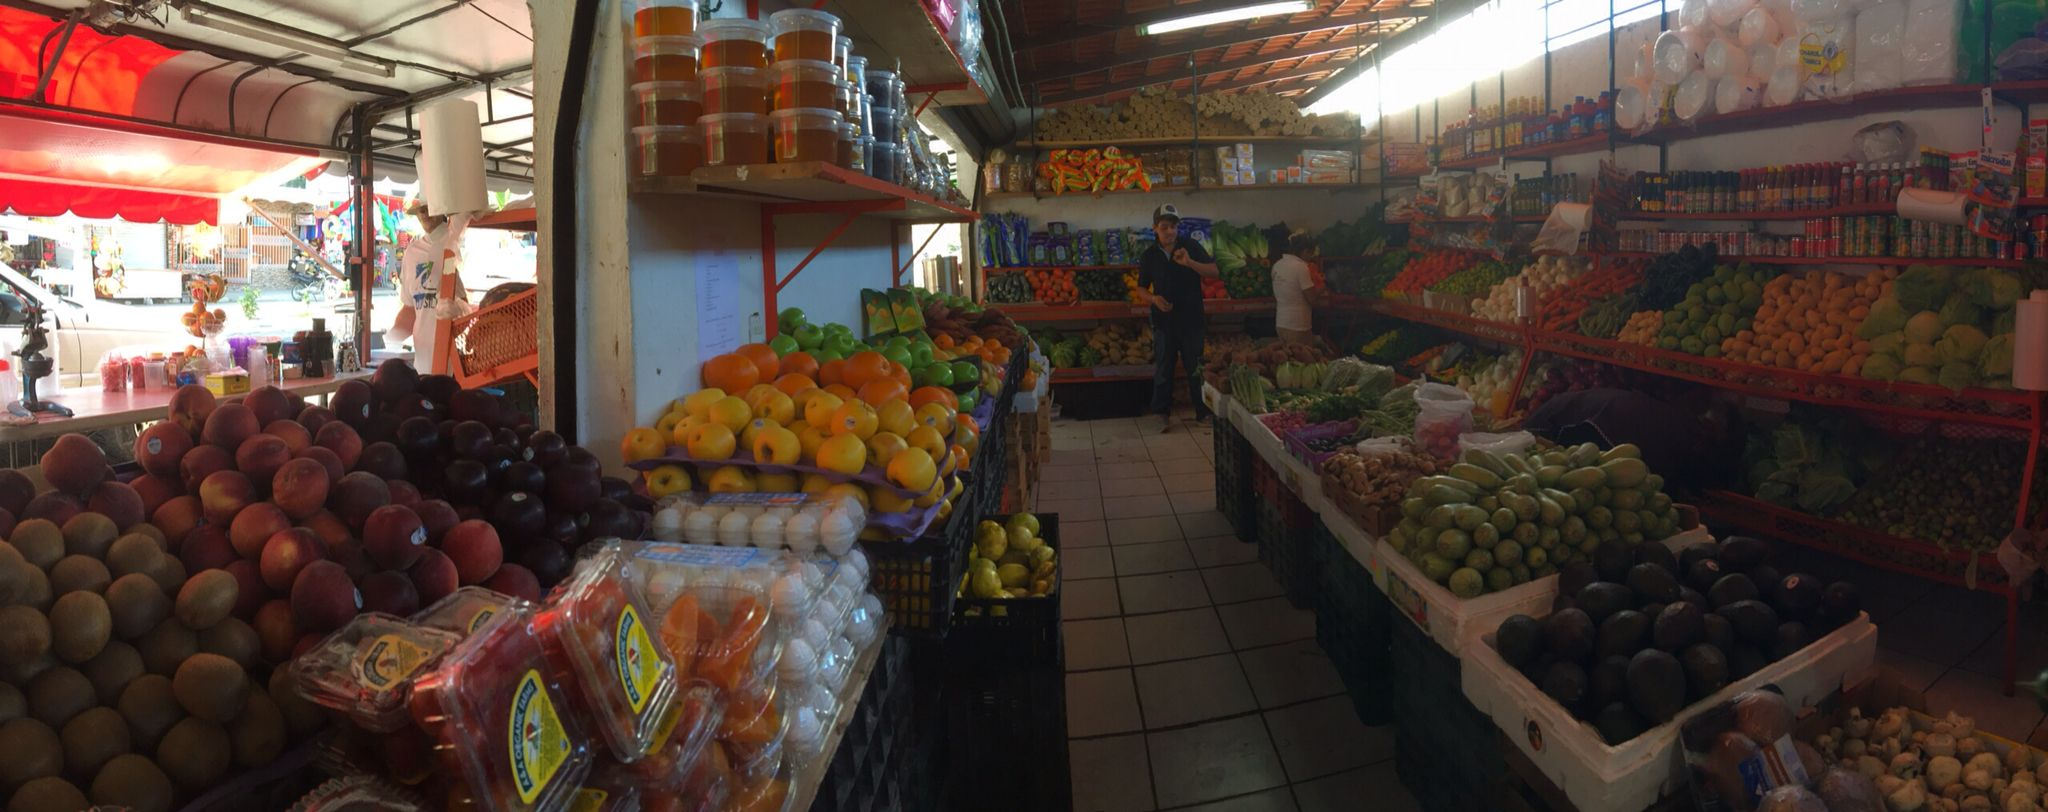 Favorite fruiteria in Guayabitos:)...and don't forget the freshly squeezed orange juice:)